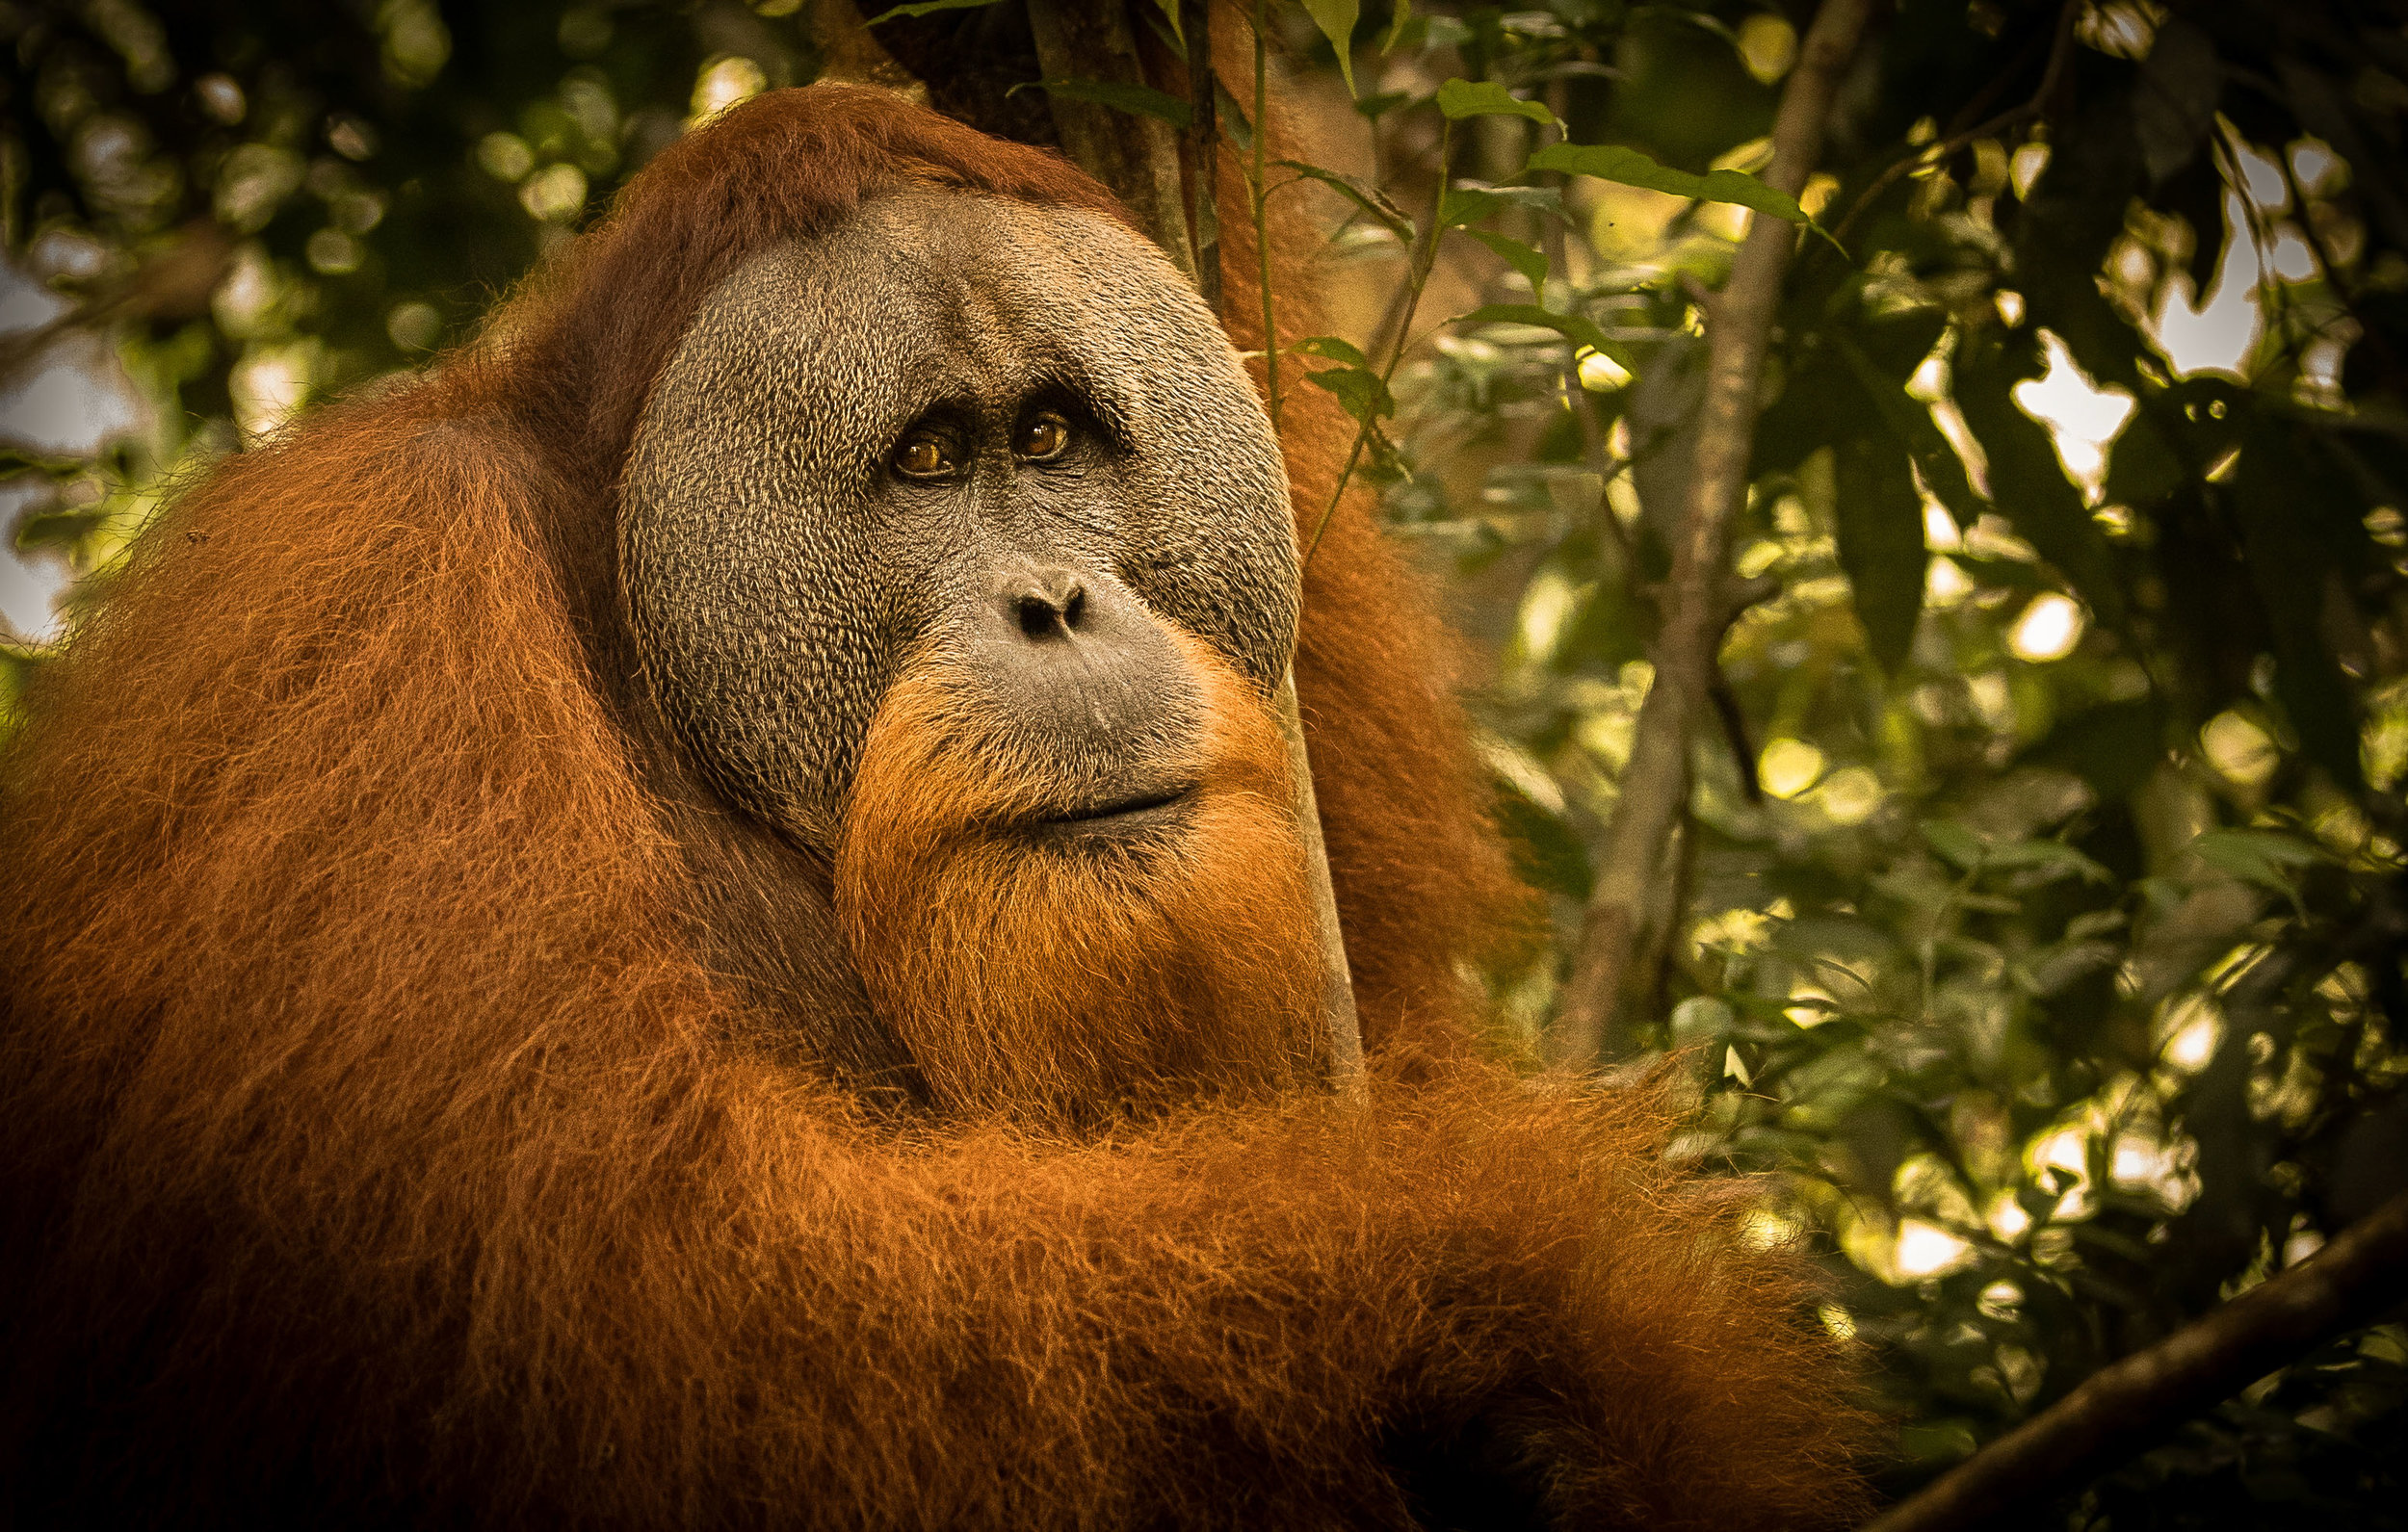 Male orangutan sits in a tree with soulful eyes from the series Broken Paradise in Gunung Leuser National Park, Northern Sumatra, Indonesia. It is easy to feel a kinship with orangutans when looking into their soulful eyes and observing their socially complex behavior. Perhaps that's because orangutans and humans share 97 percent of their DNA. The Sumatran orangutan is at extreme risk of becoming the first great ape to go extinct in the wild. The last major stands of habitat for the Sumatran orangutan are found in the Leuser Ecosystem, which supports about 75 percent of the world's remaining population. Awarded the 2019 International Color Awards in the category Wildlife.